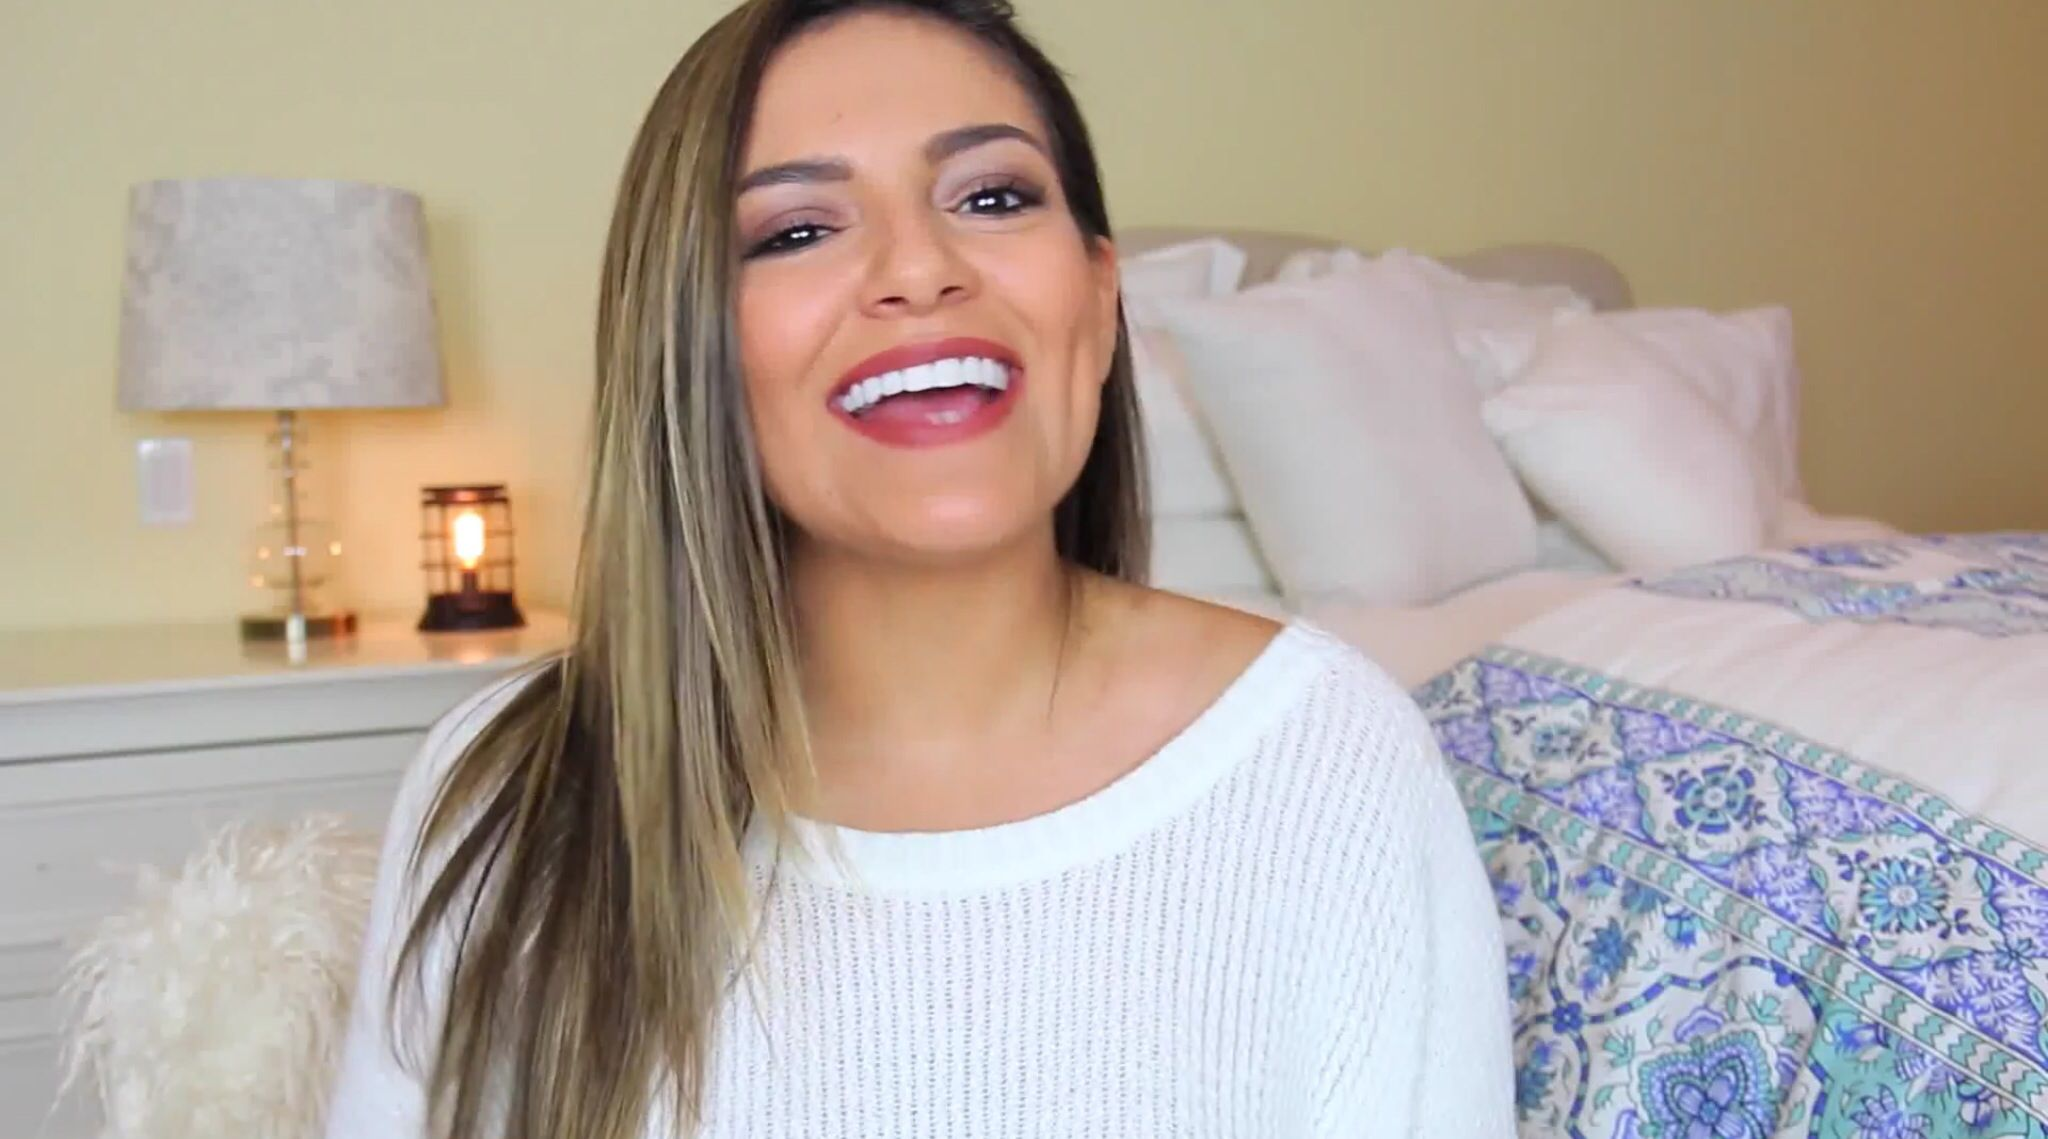 Beth uploaded a new vid and vlog beauty hair